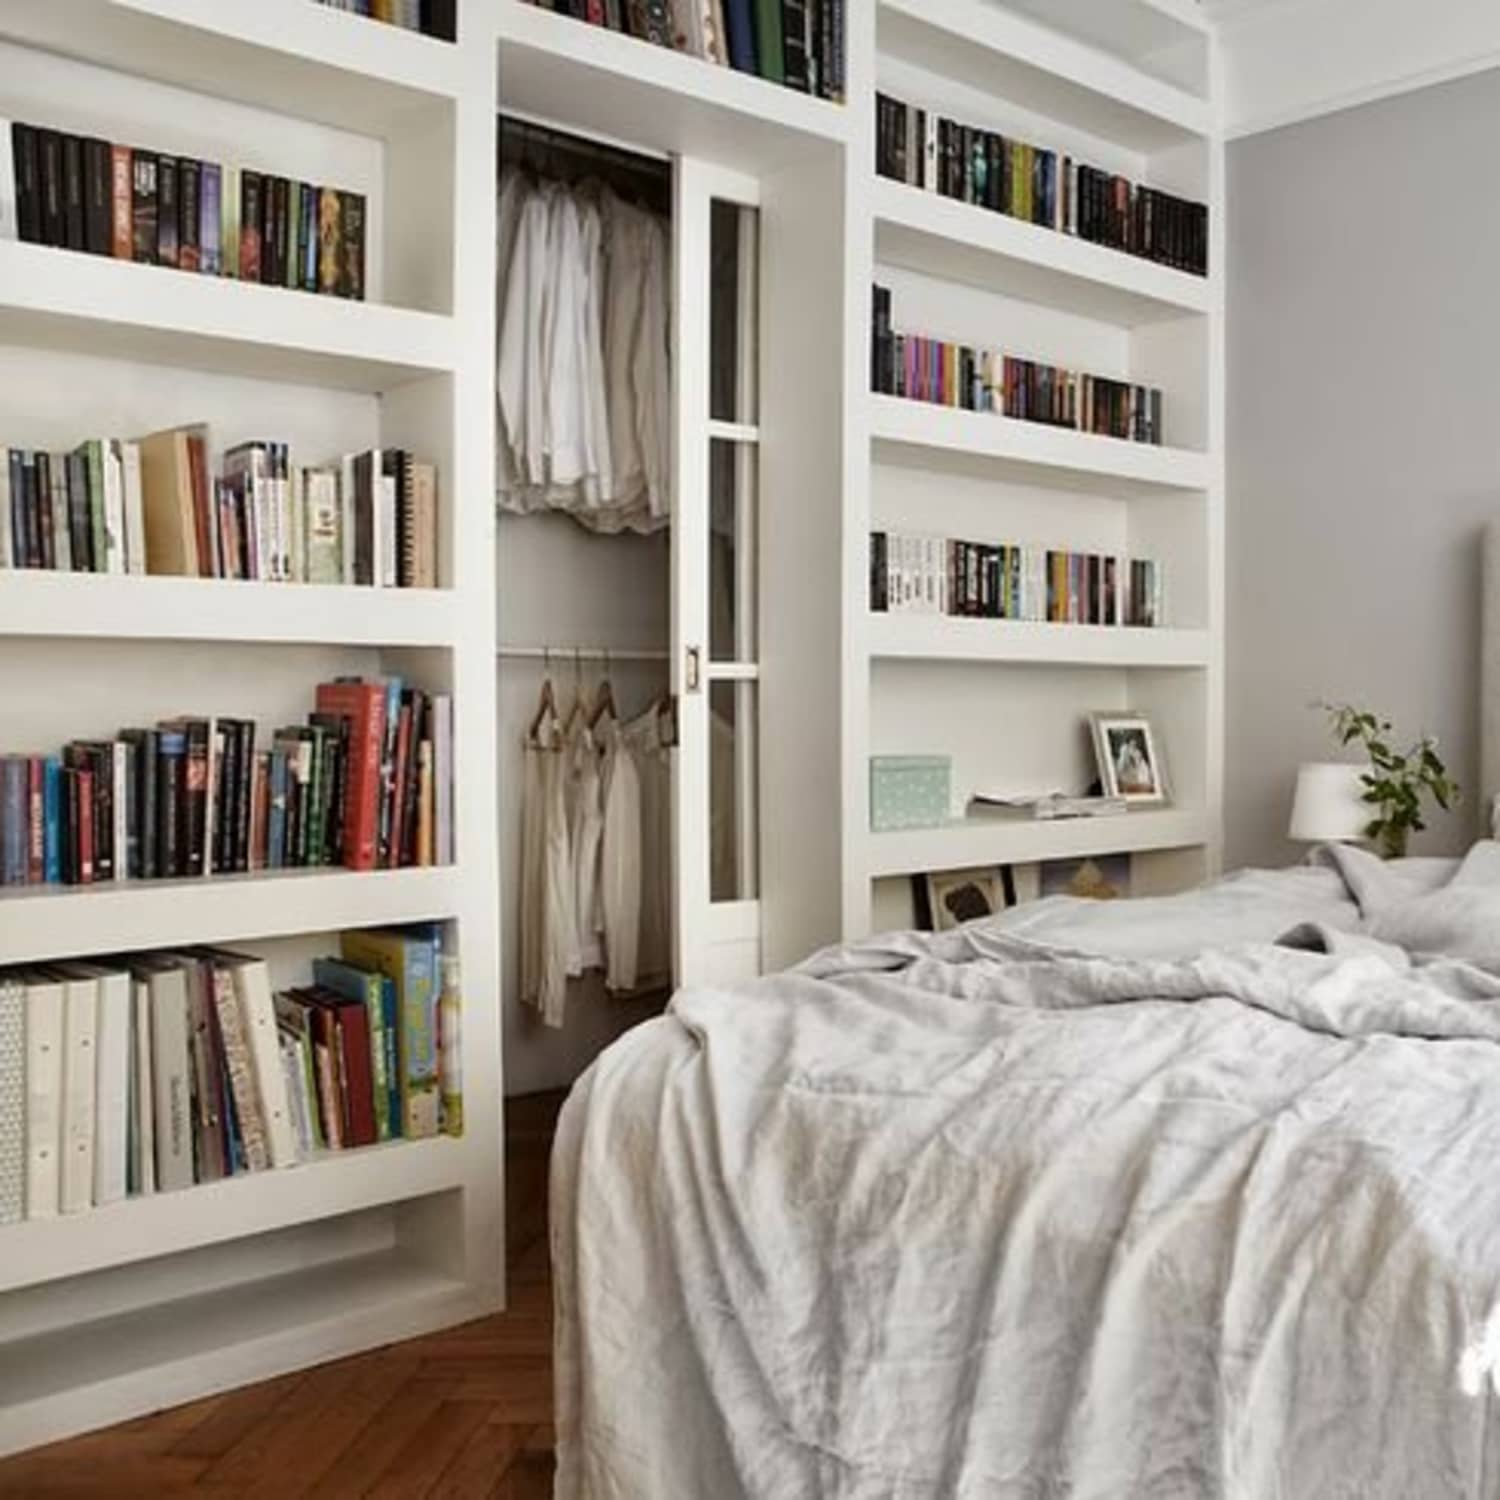 Renovation Inspiration: Make the Most of Your Bedroom with ...